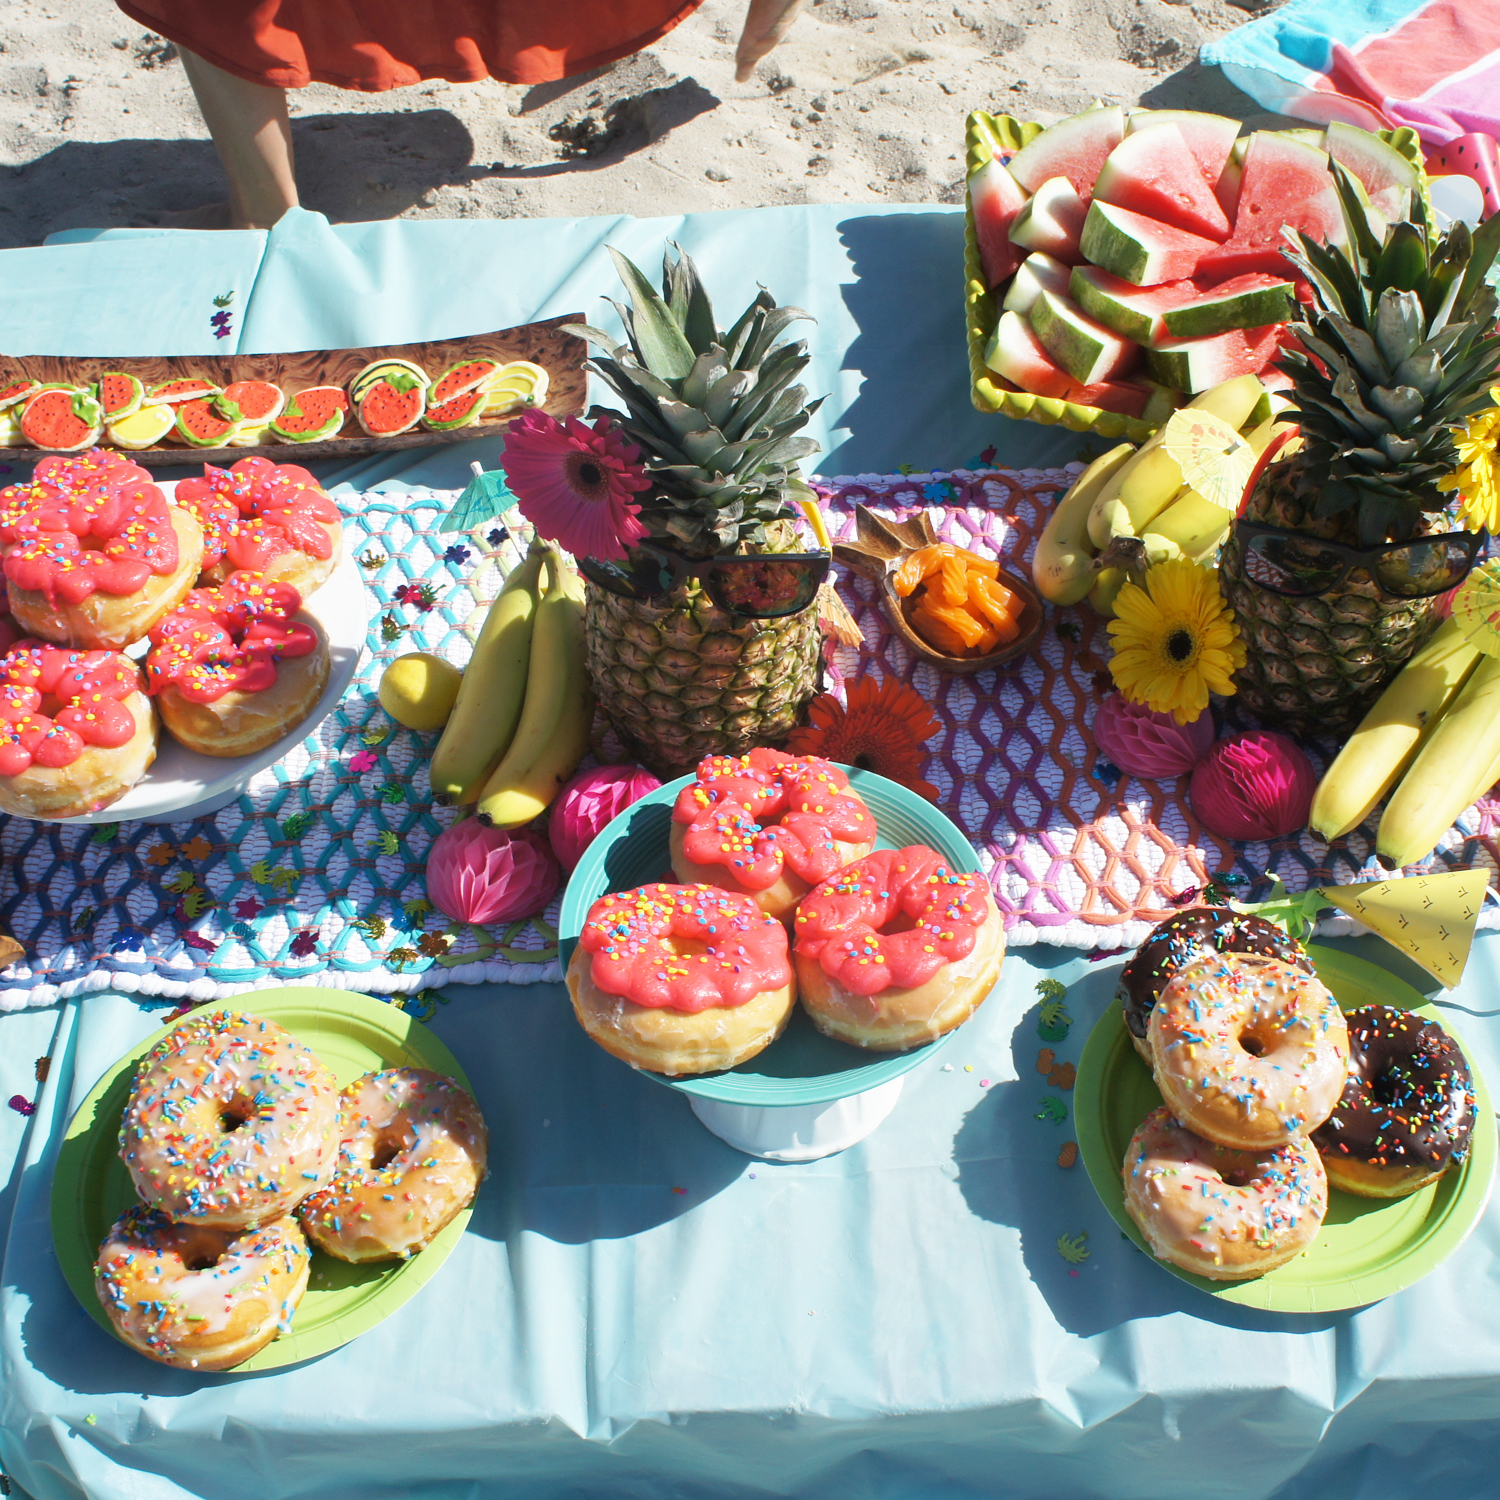 We tried to keep it easy & served donuts & fruit & cookies....I'm sure the mamas were supper grateful that we offered a variety of sugars before dinner time! Whoops!